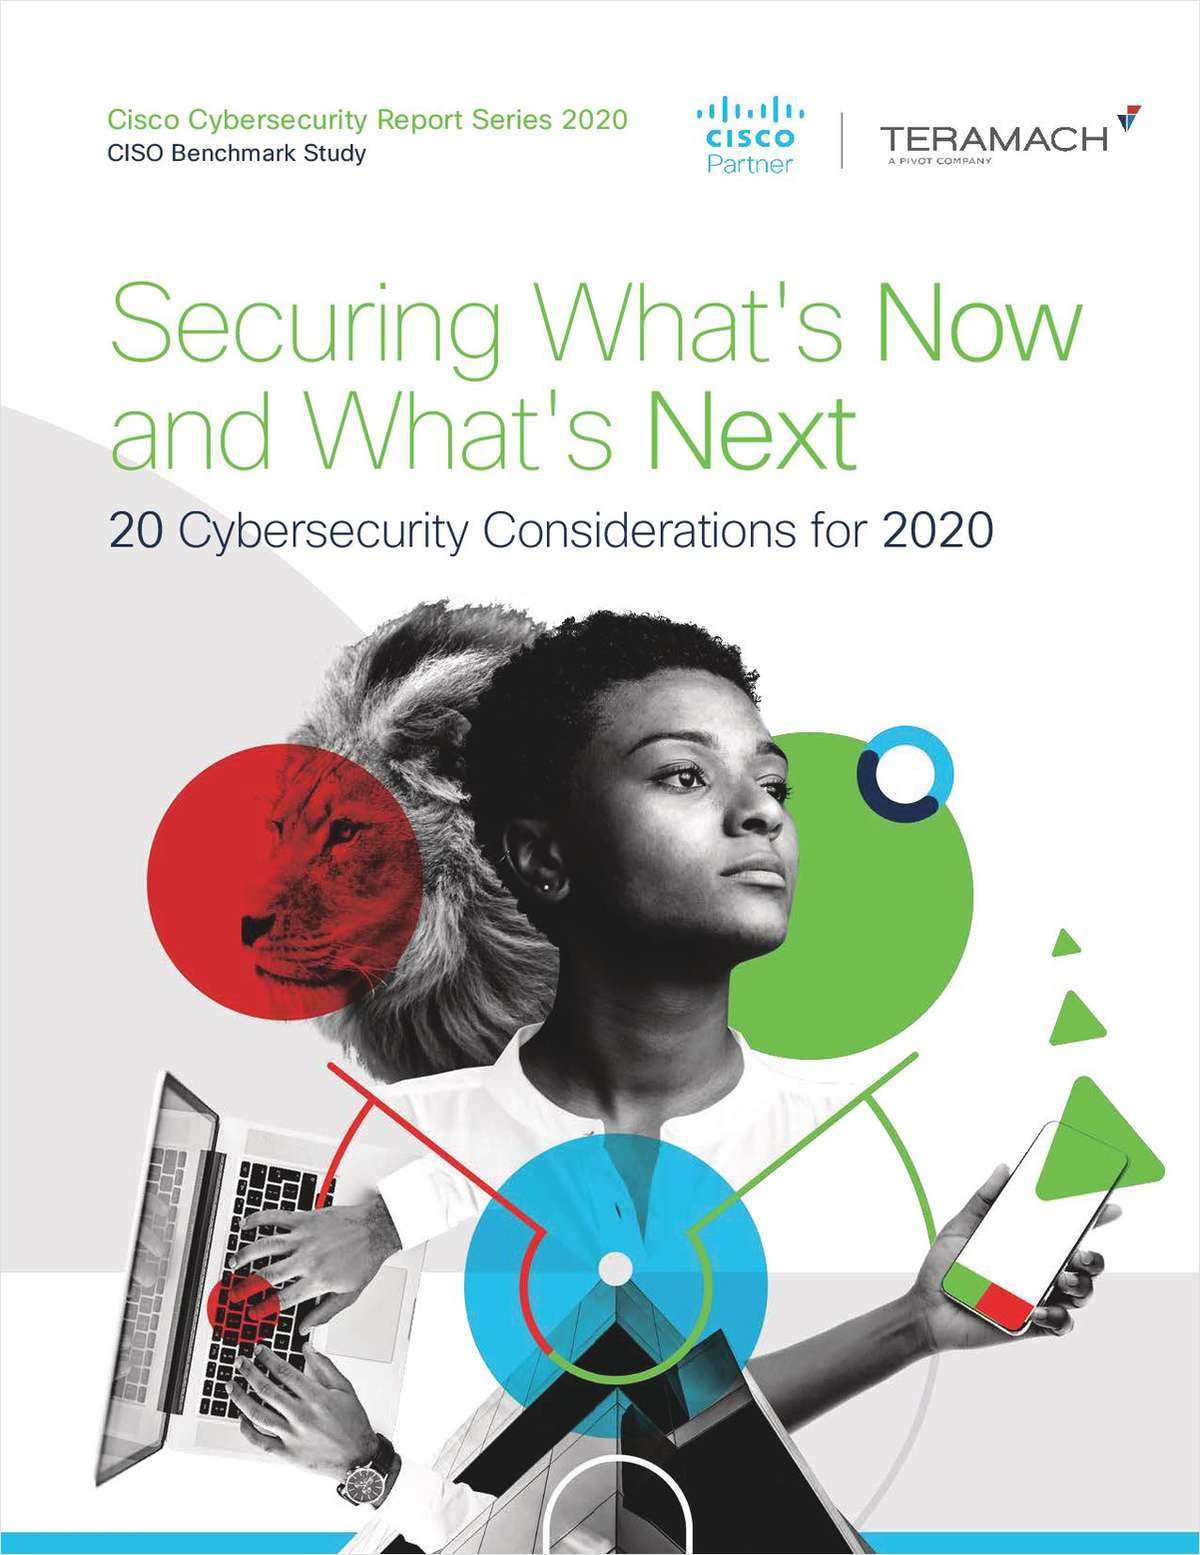 Securing What's Now and What's Next: 20 Cyber Security Considerations for 2020